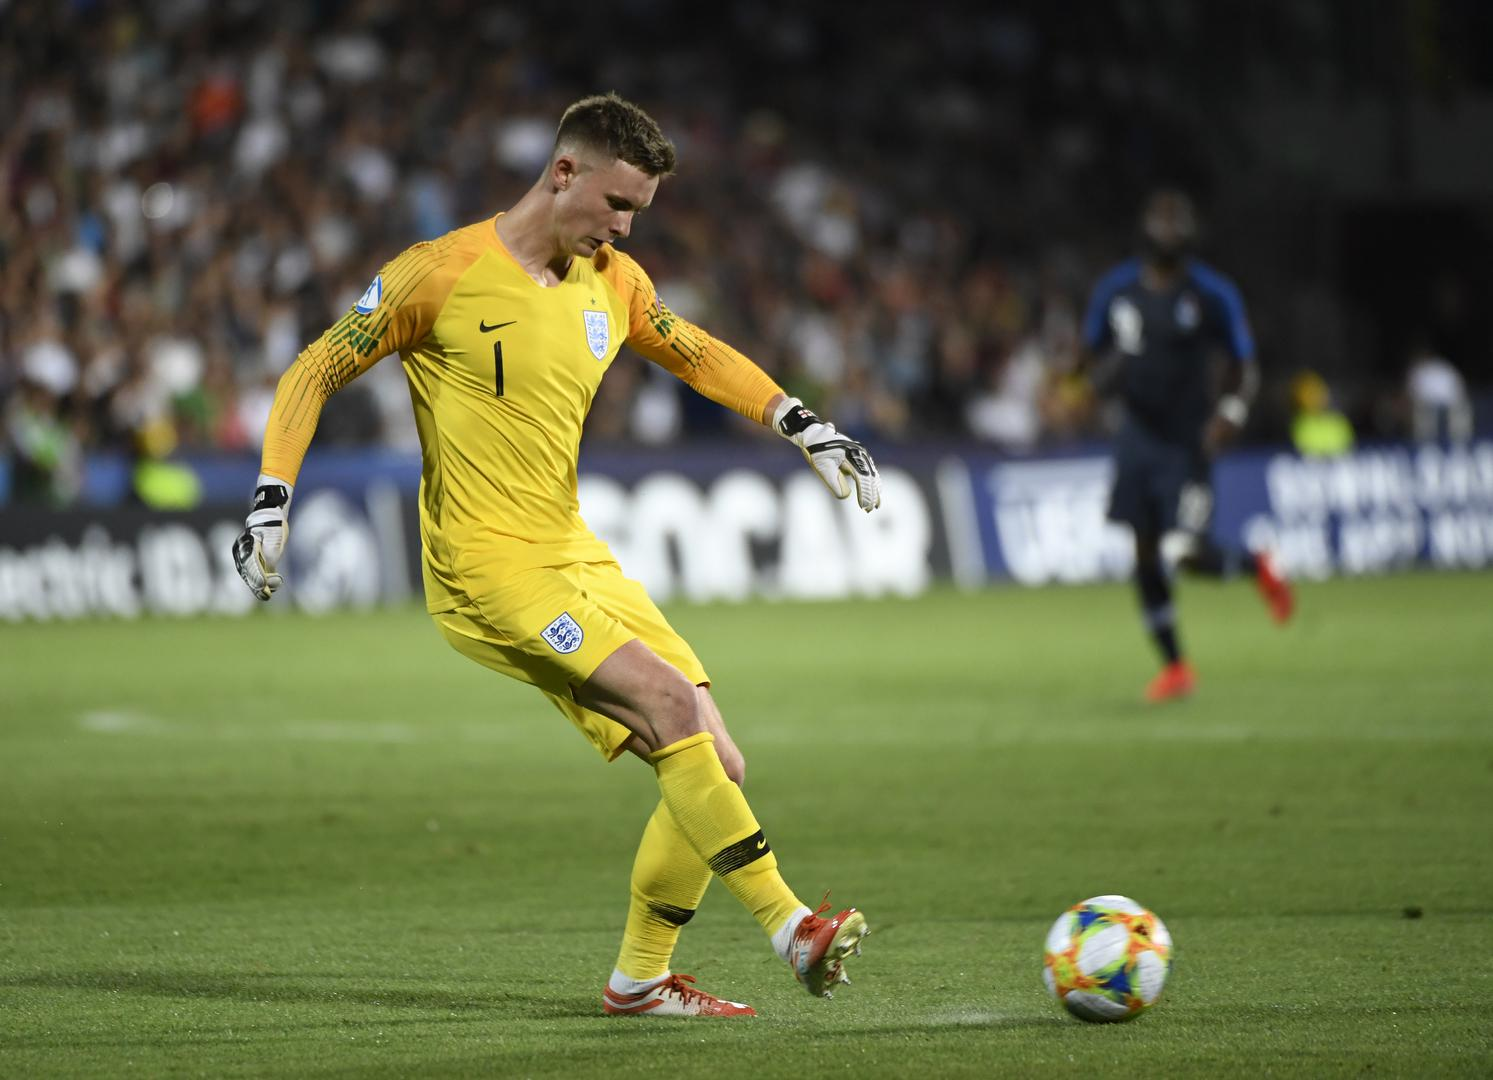 Dean Henderson kicks the ball during England's 2-1 defeat to France in the European Under-21 Championships.,